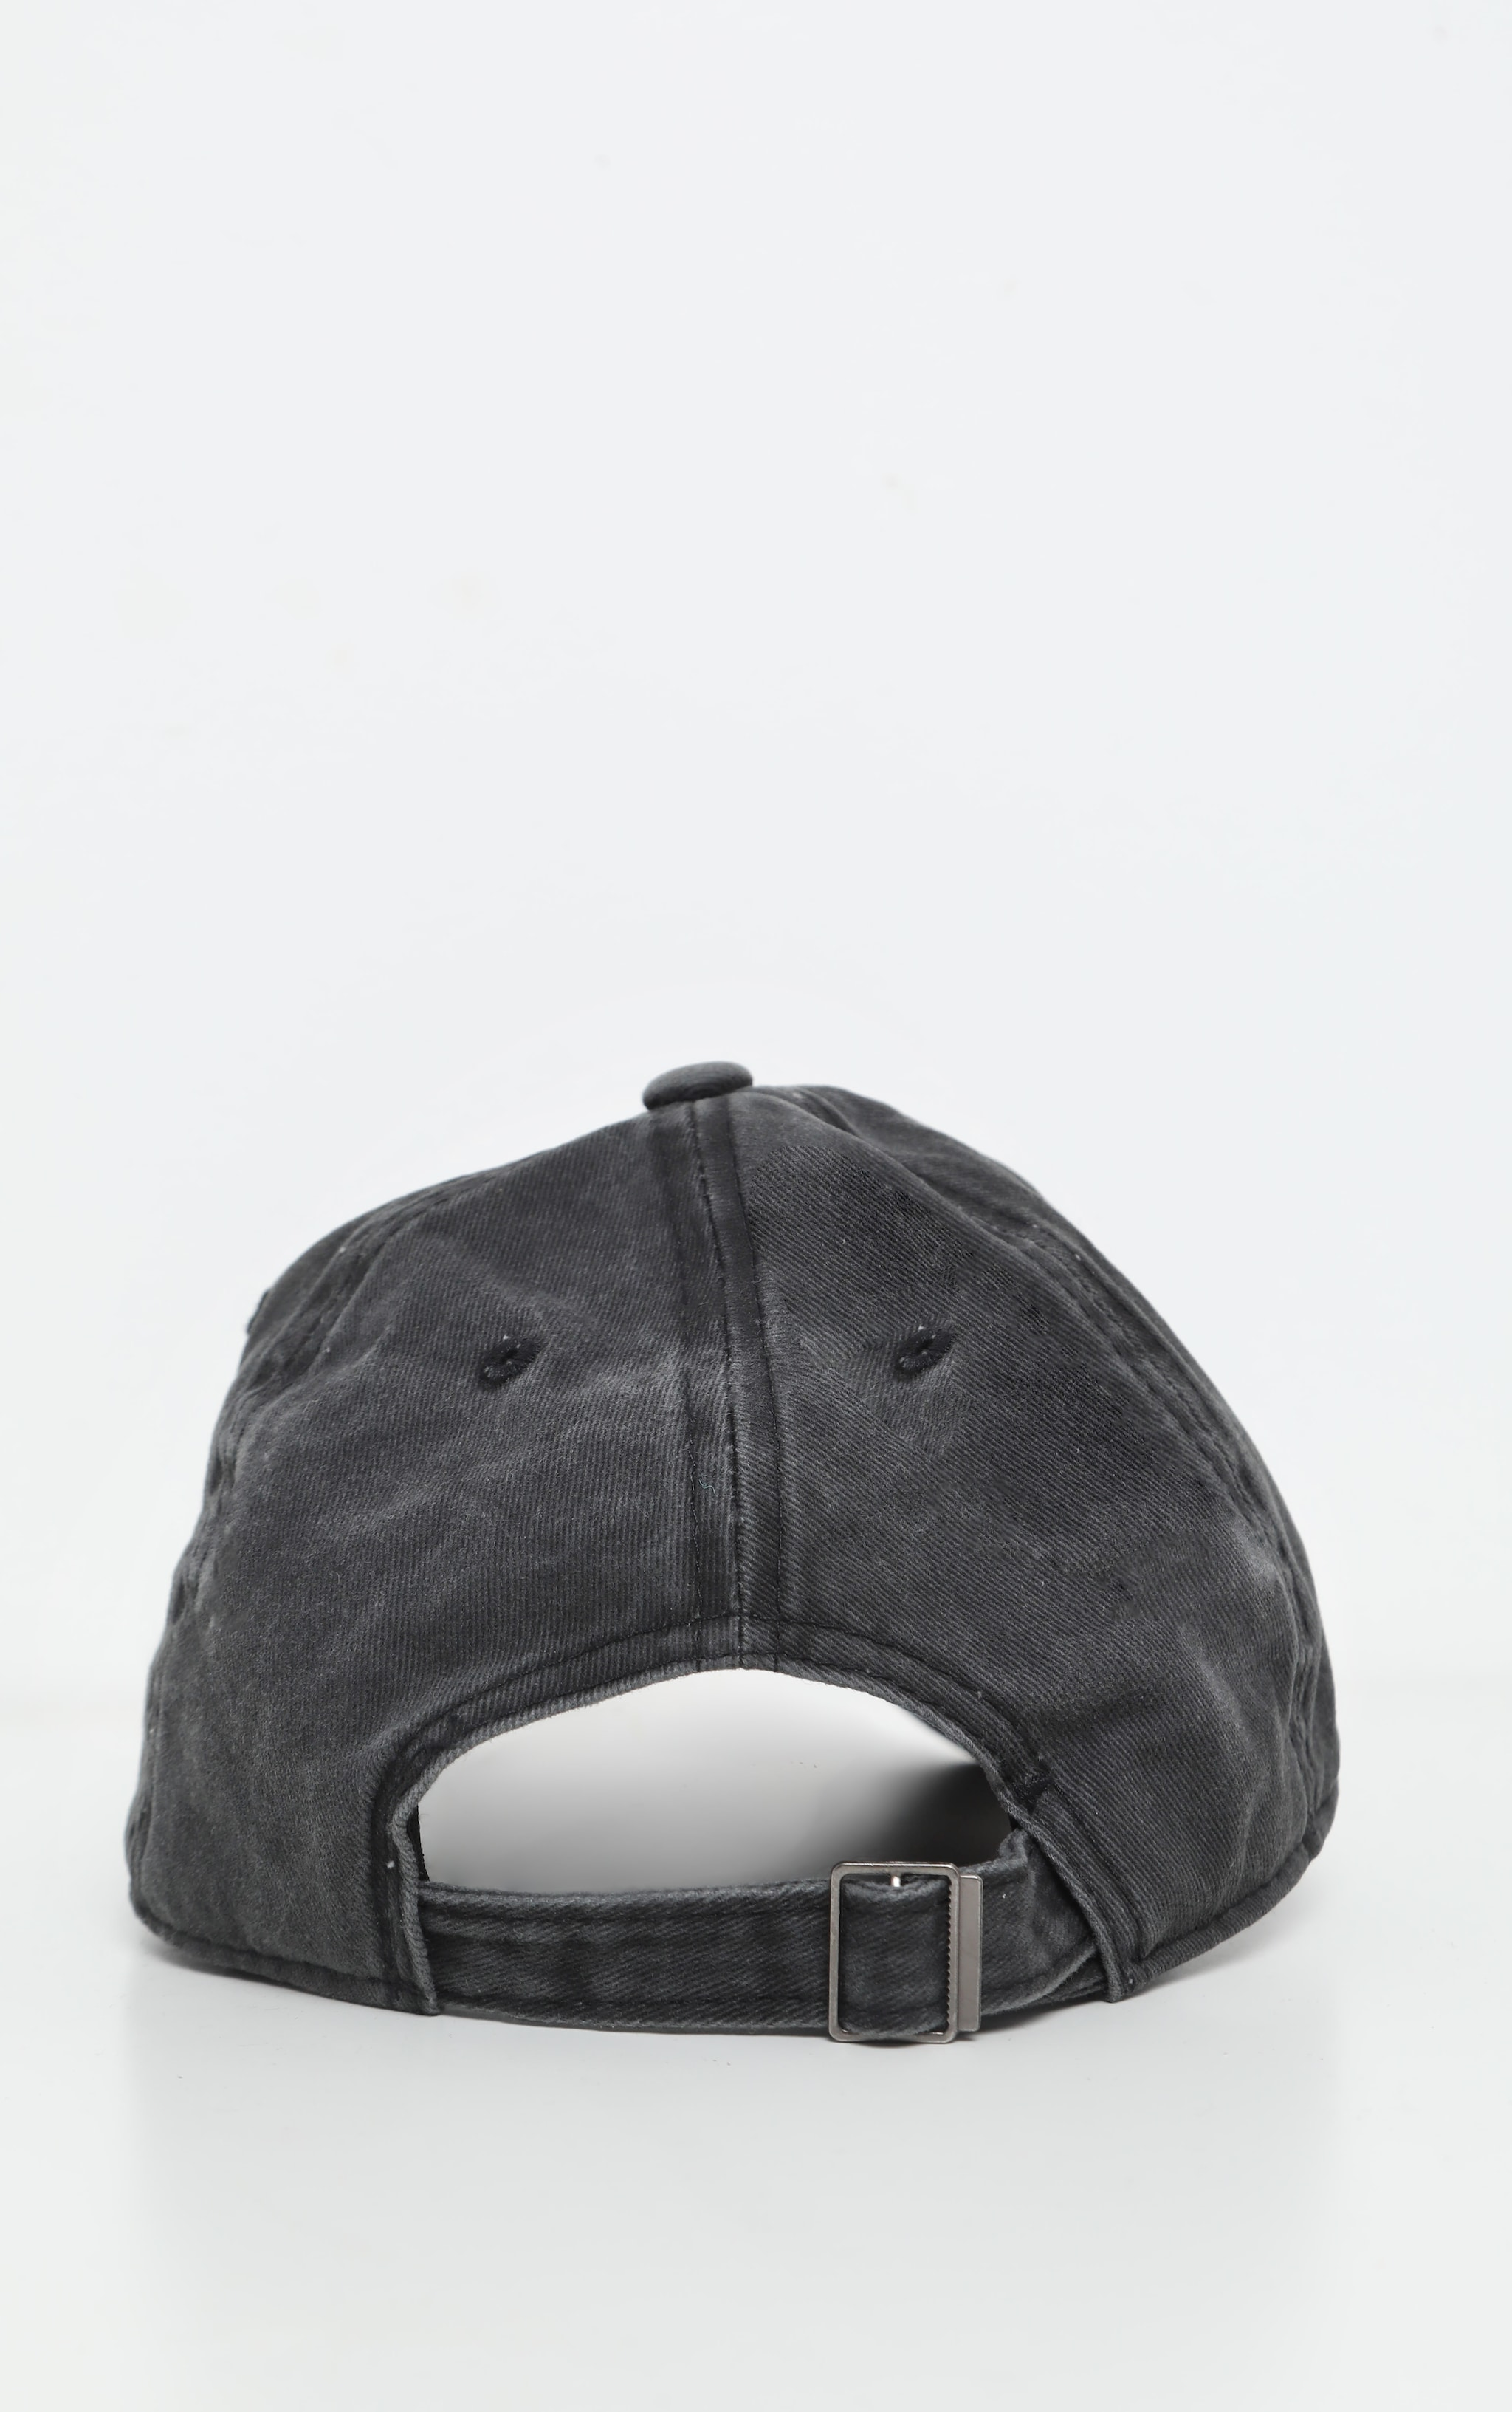 Black Distressed Fabric Cap   4